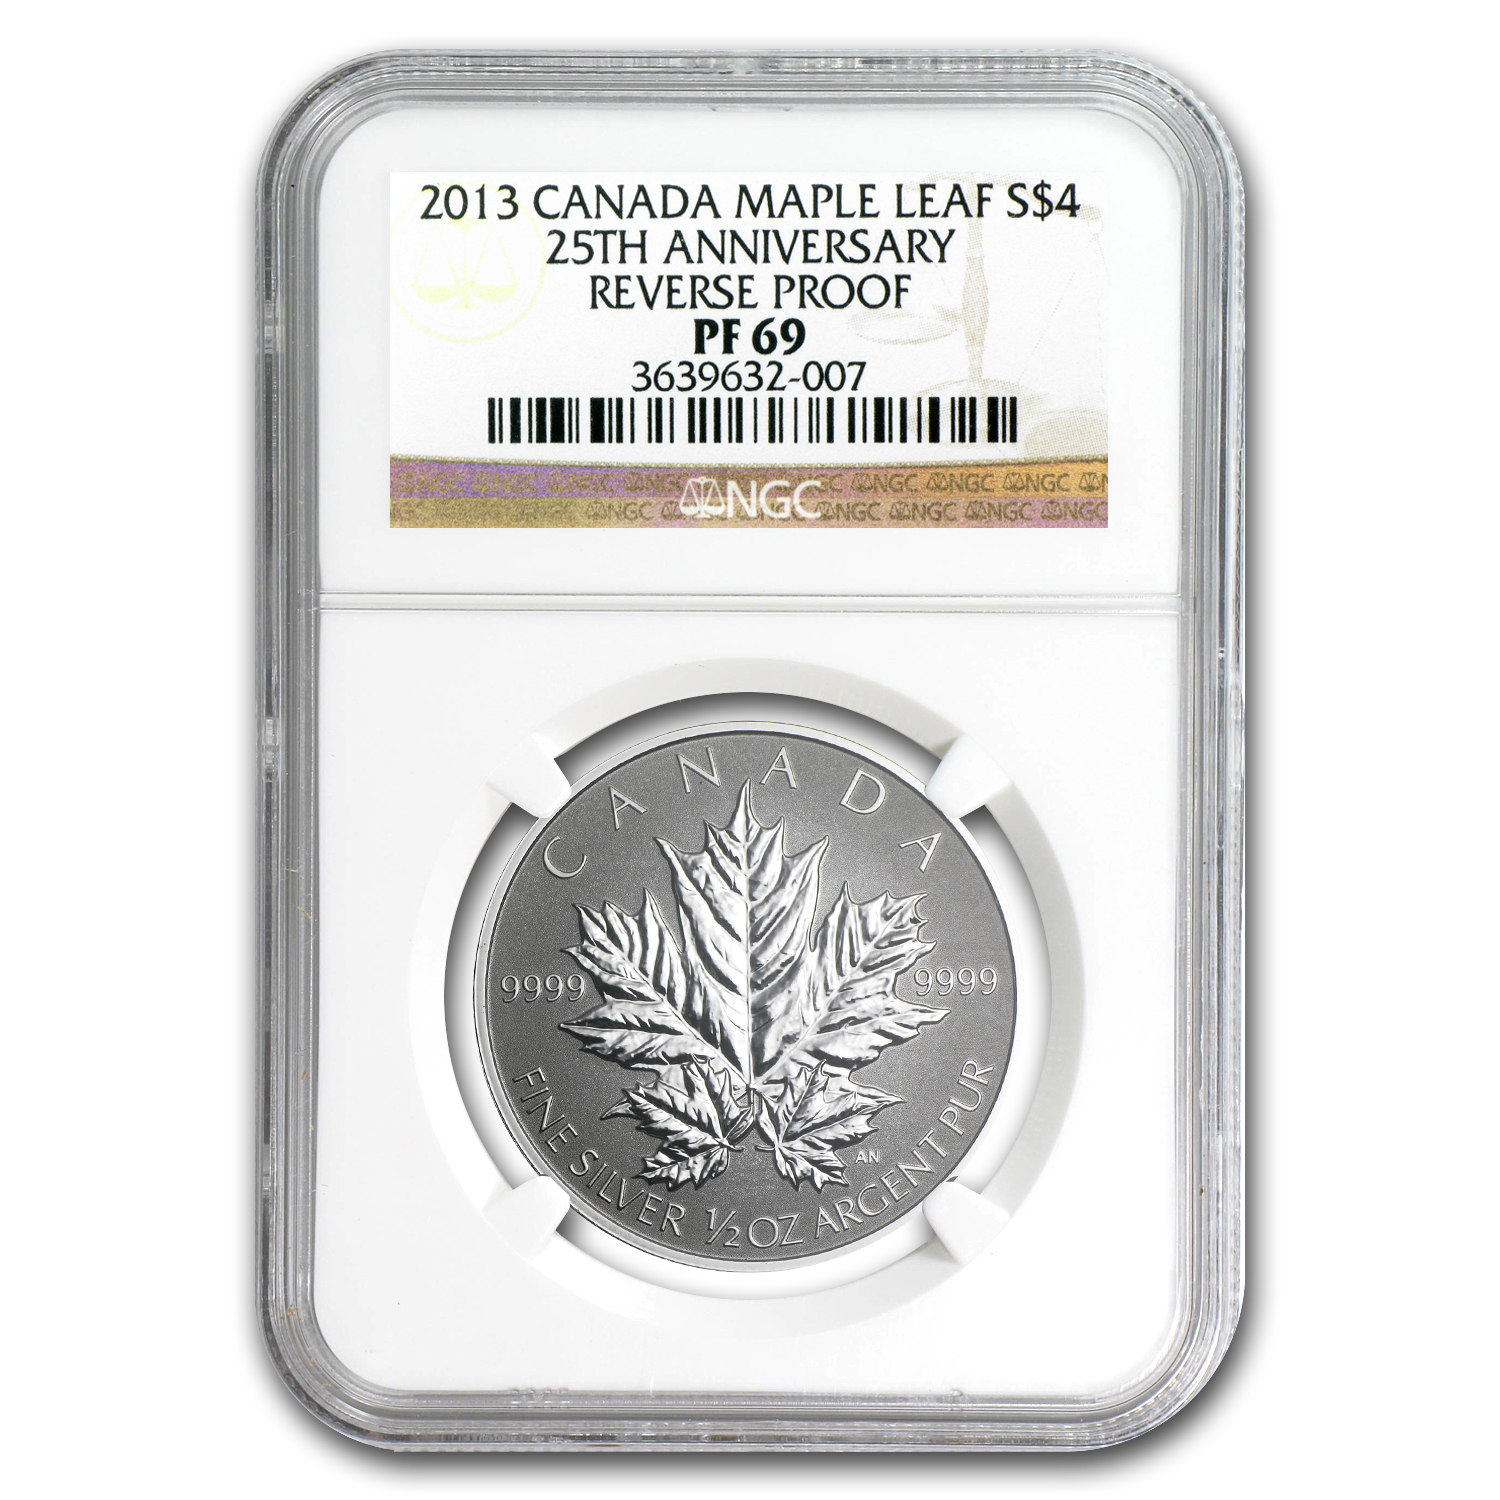 2013 Canada 1/2 oz Silver $4 Maple Leaf 25th Anniv PF-69 NGC